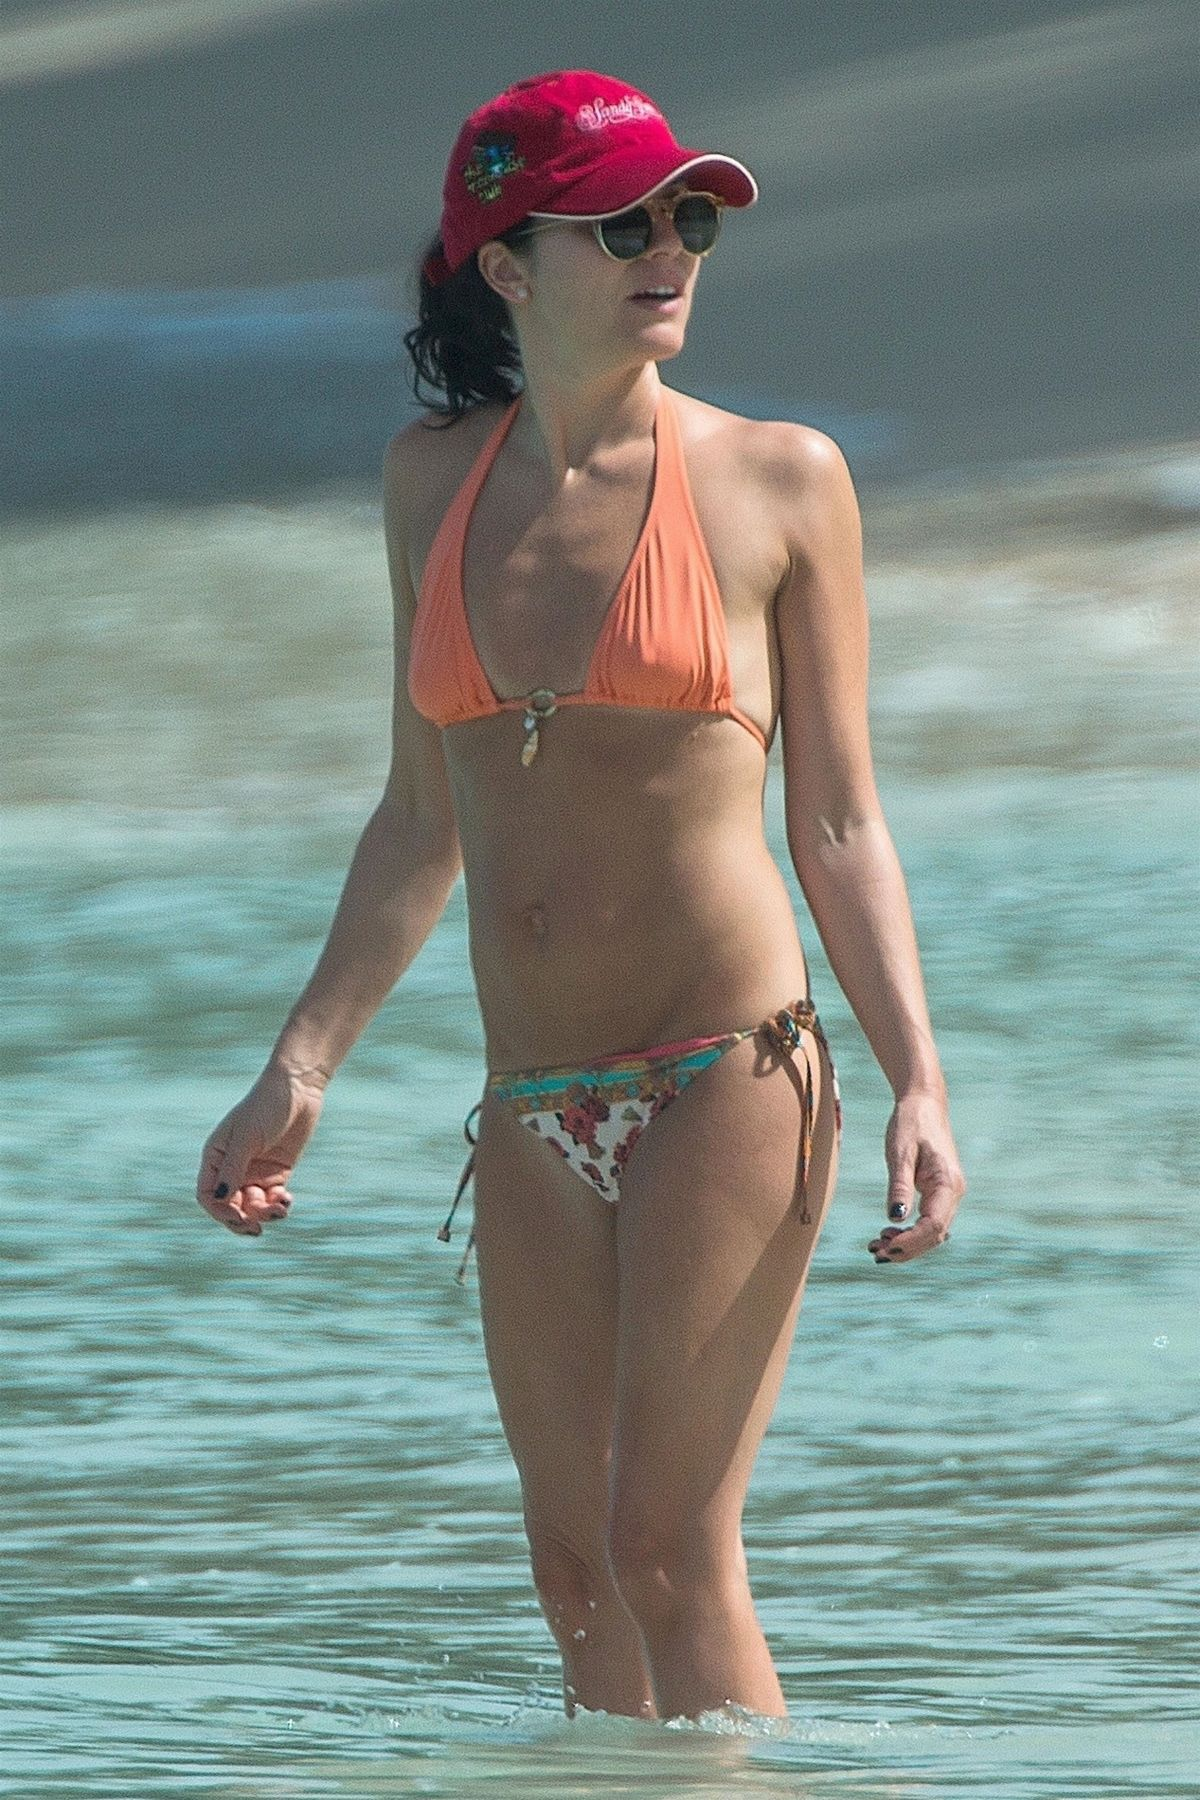 Andrea corr in bikini at a beach in barbados 03282018 hawtcelebs andrea corr in bikini at a beach in barbados 03282018 altavistaventures Choice Image